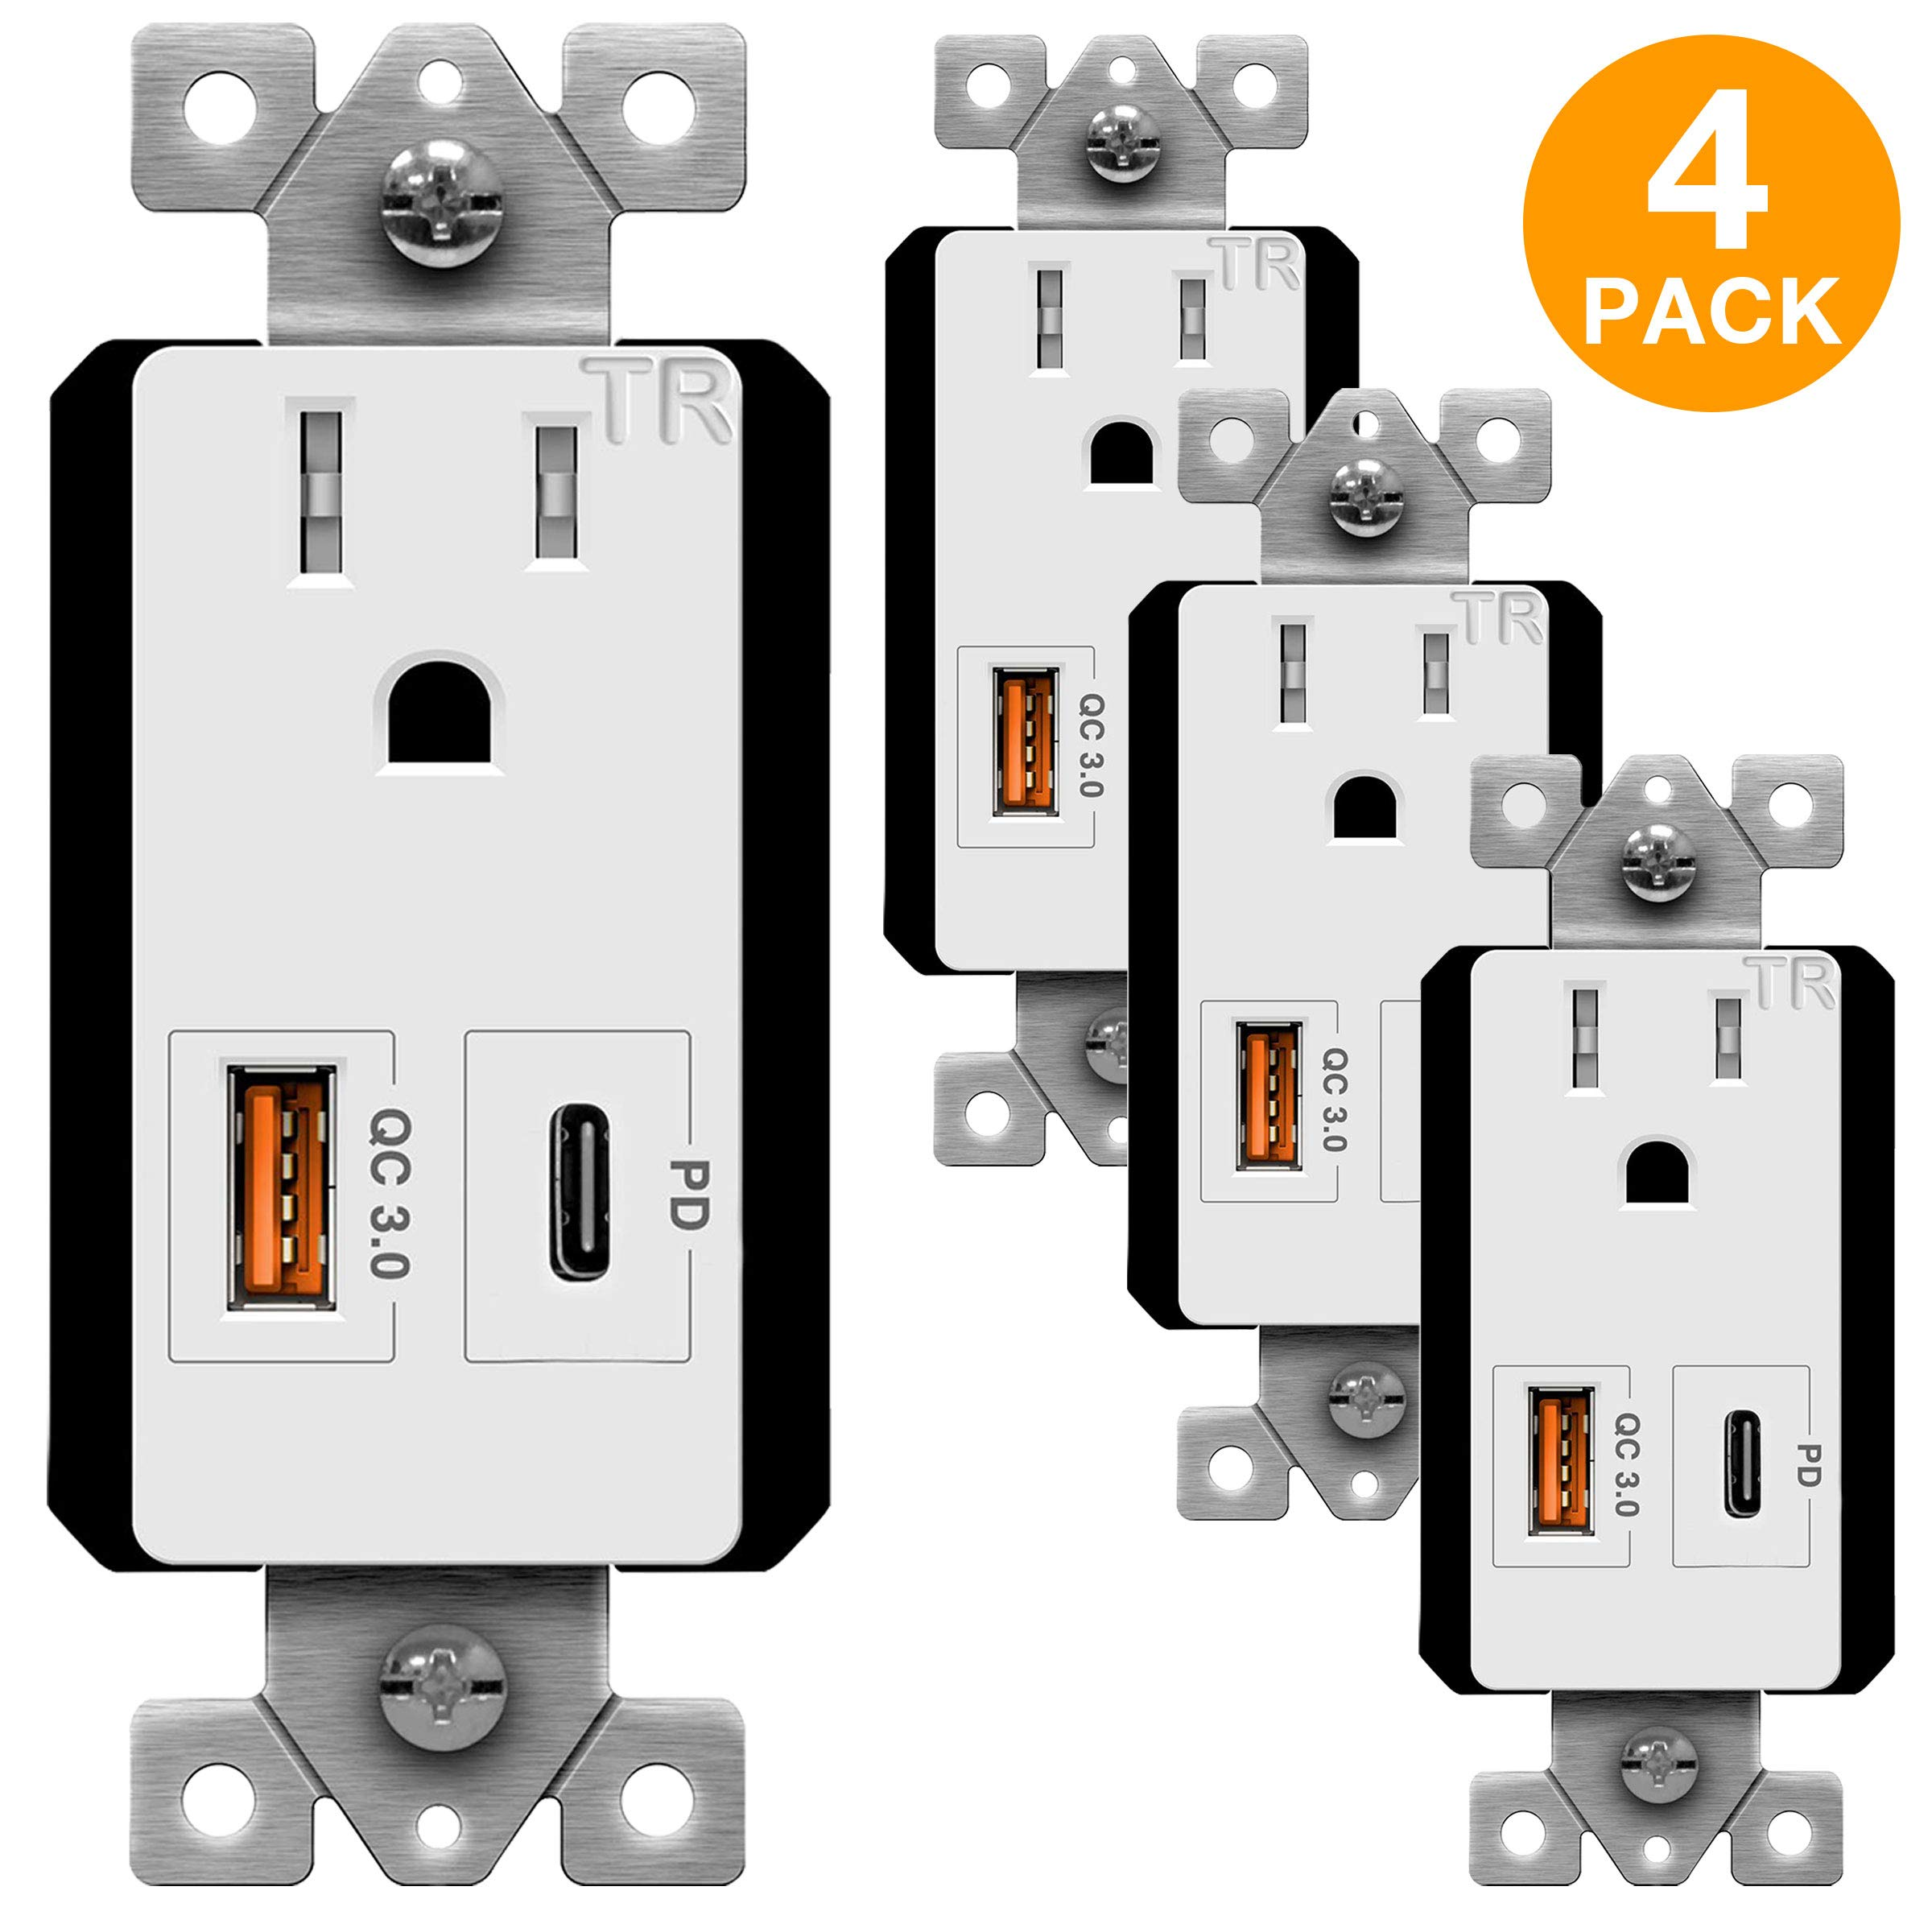 TOPGREENER USB Outlet with 18W Type-C Power Delivery Port and Quick Charge 3.0 USB Port, 15A TR Outlet, for iPhone 8/X/XS/XR, iPad Pro, iPad Mini 4, Google Pixel, Samsung Galaxy, TU115QC3PD, 4-Pack by TOPGREENER